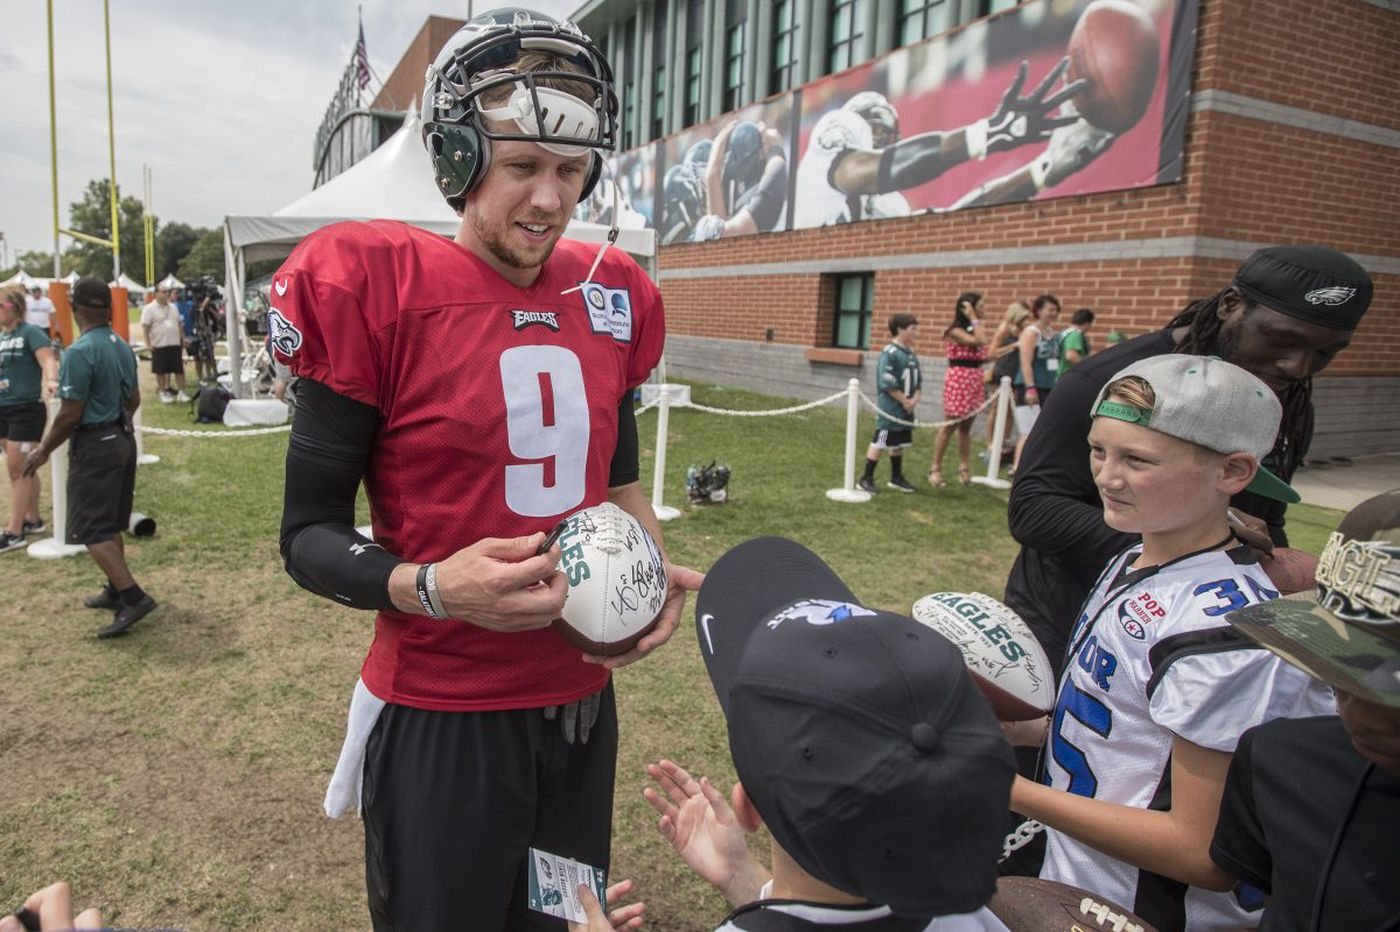 Eagles QB Nick Foles returning from elbow soreness